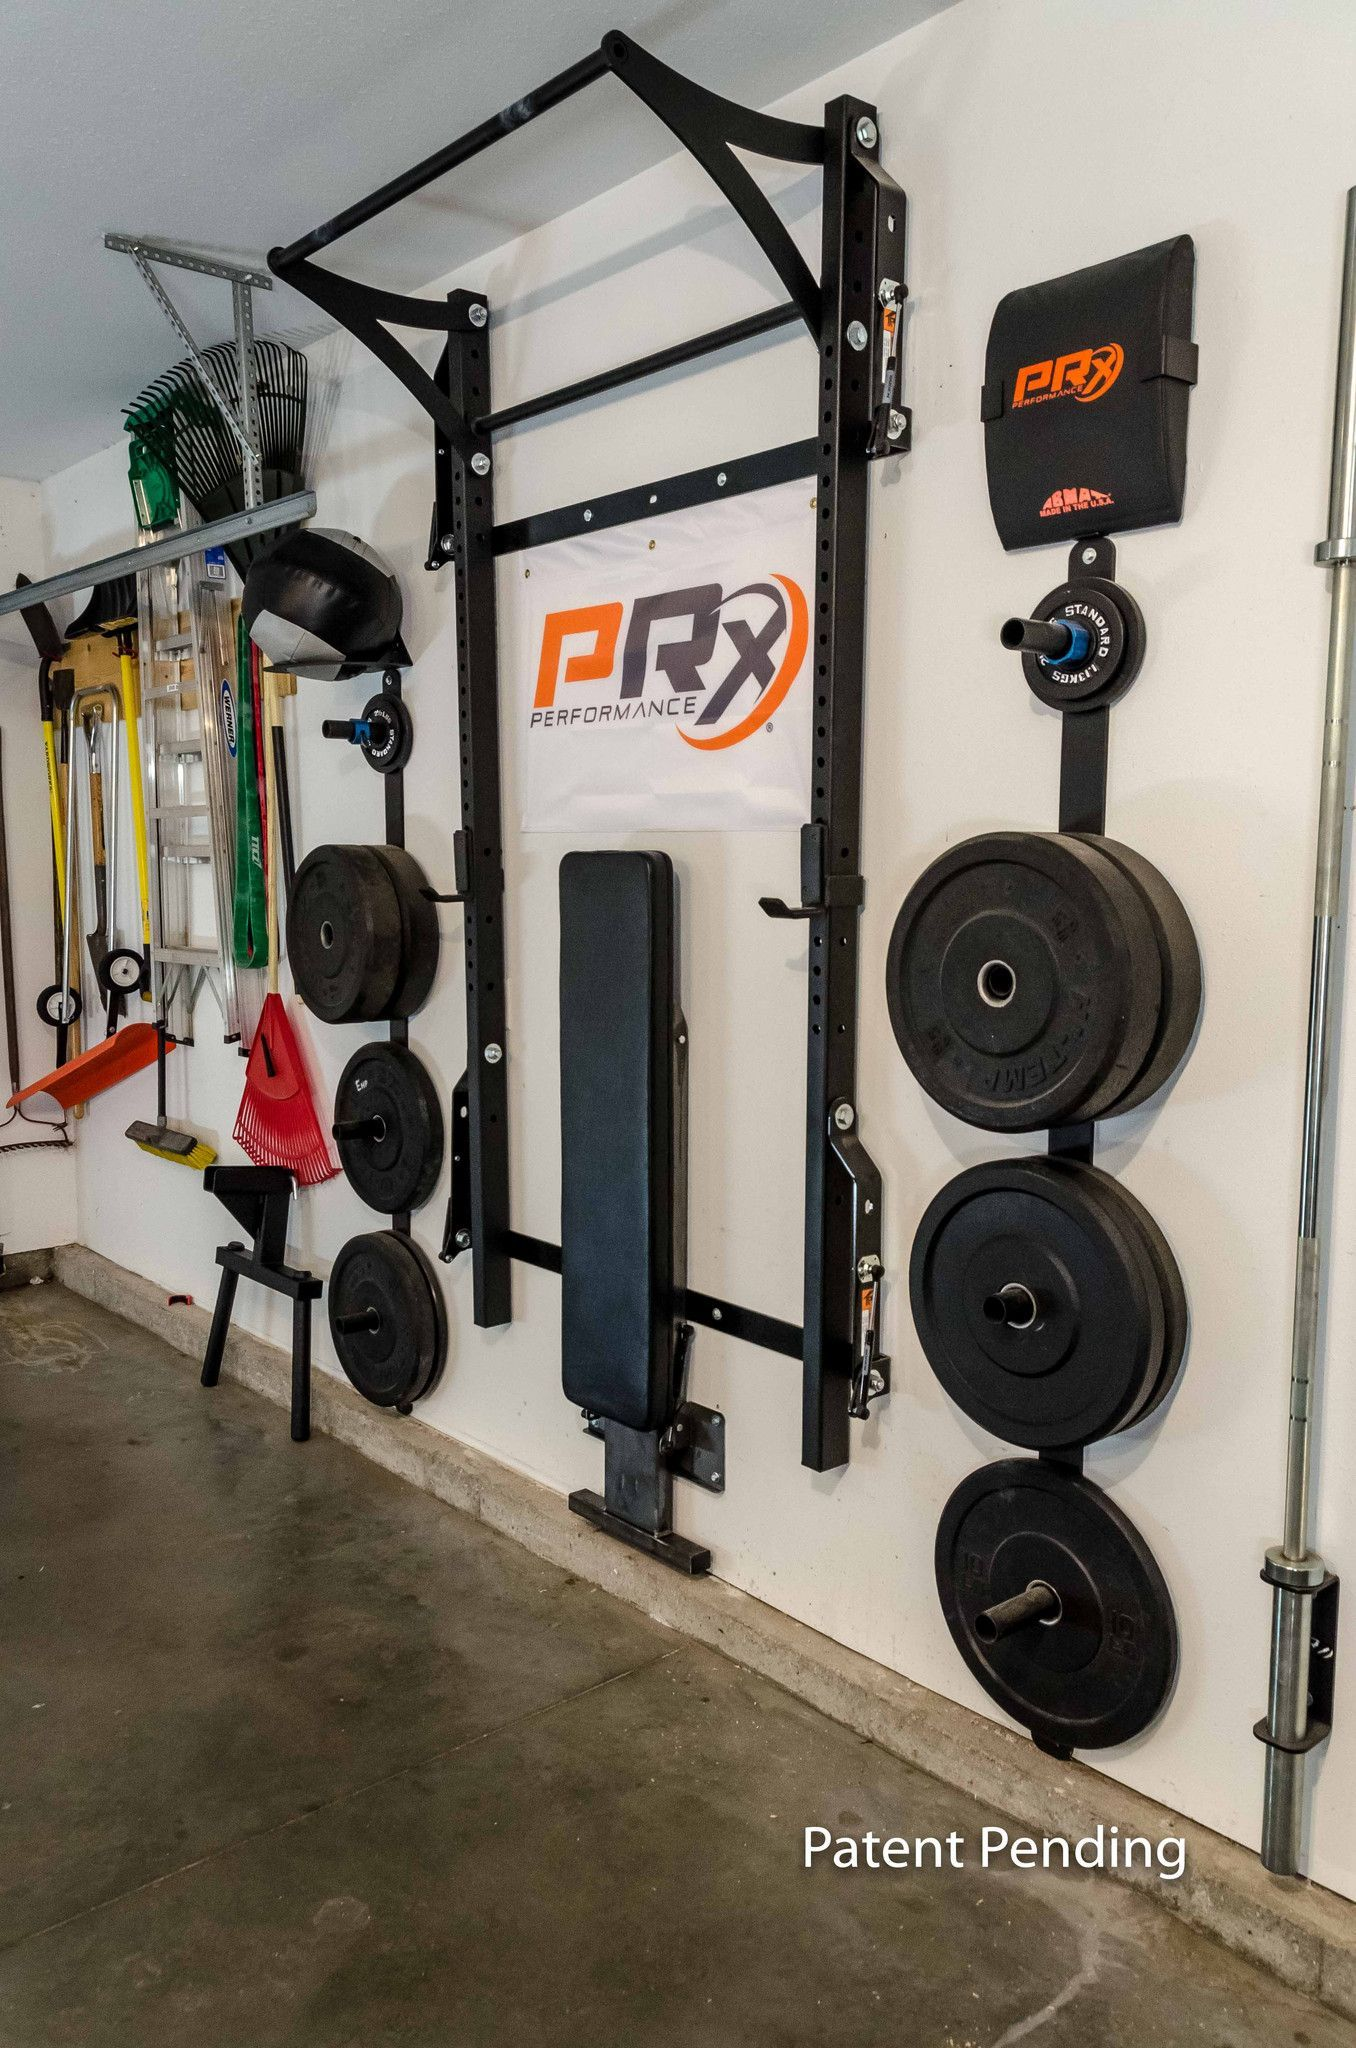 Diy Garage Gym Equipment Prx Profile Folding Bench Crossfit For Women At Home